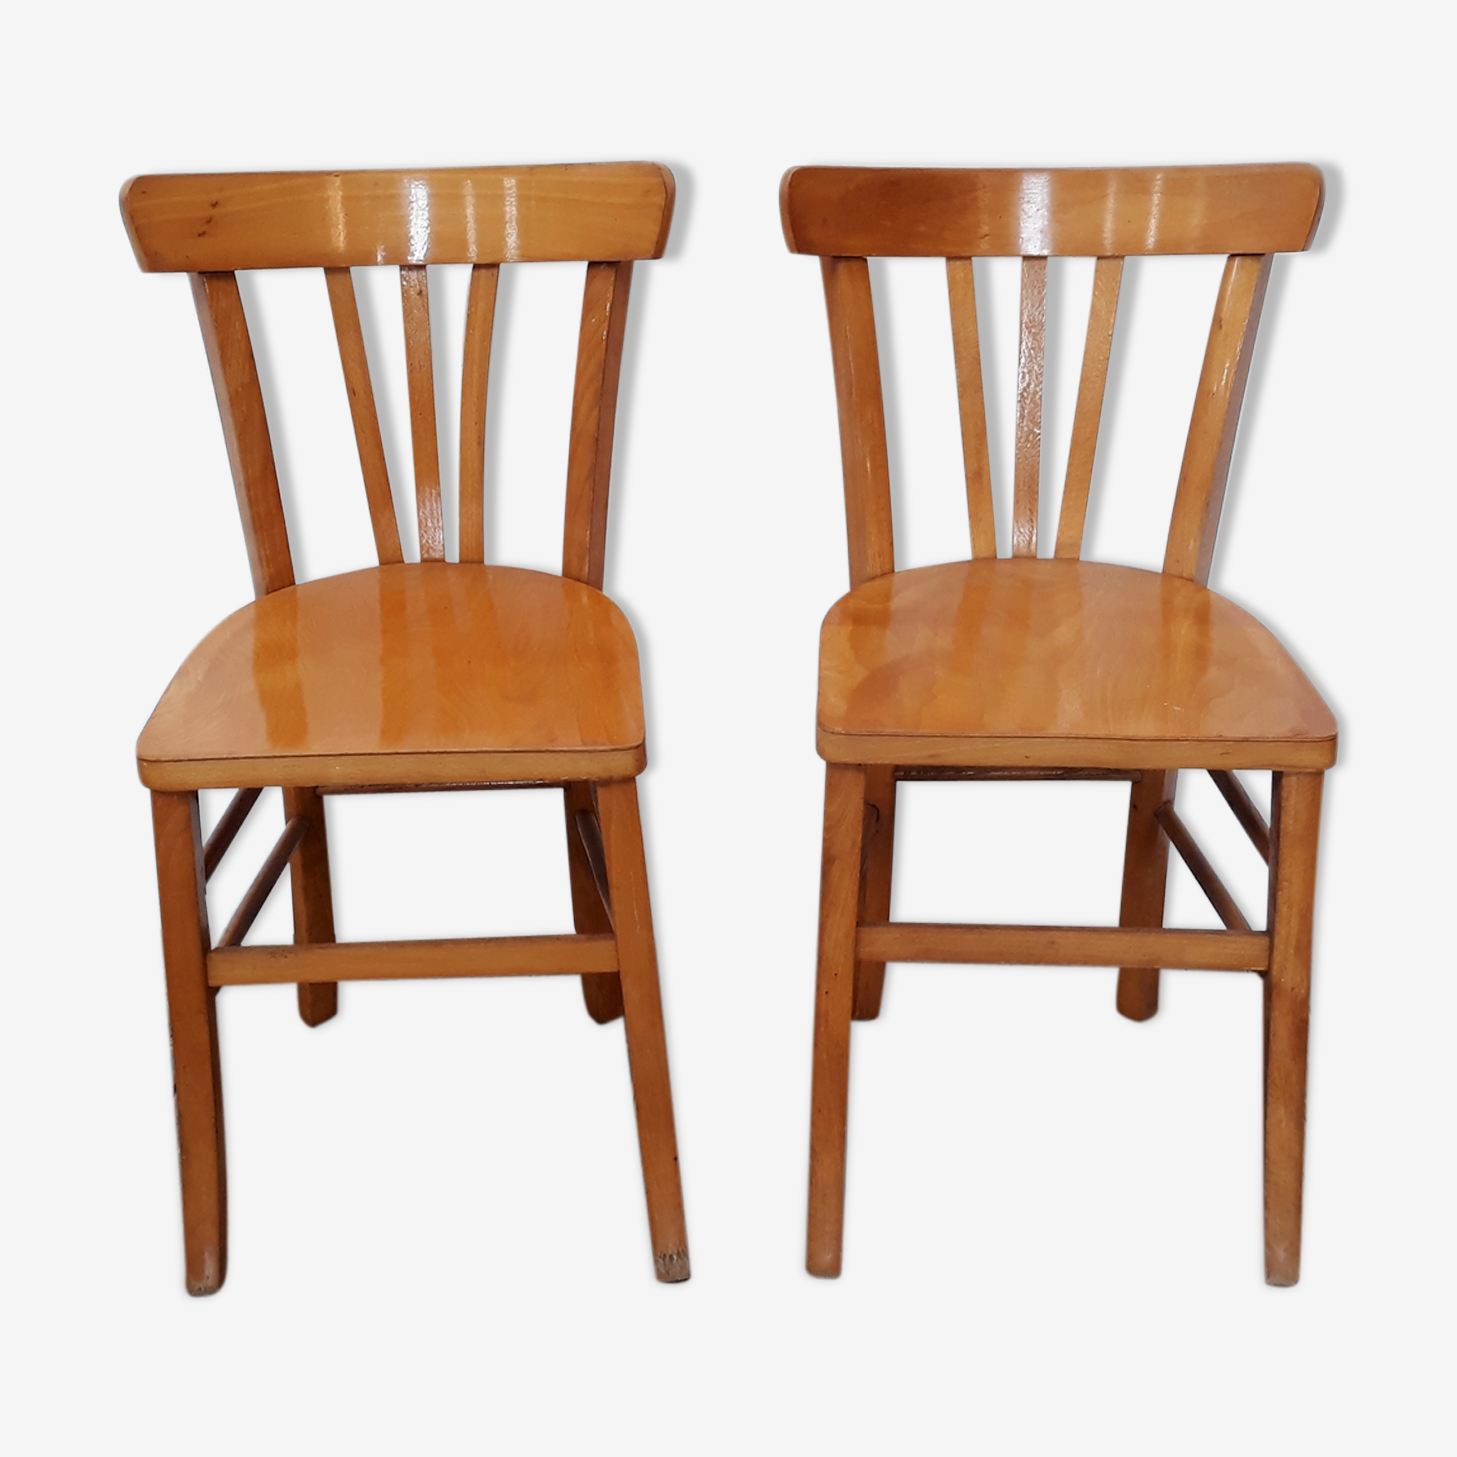 2 bistro chairs